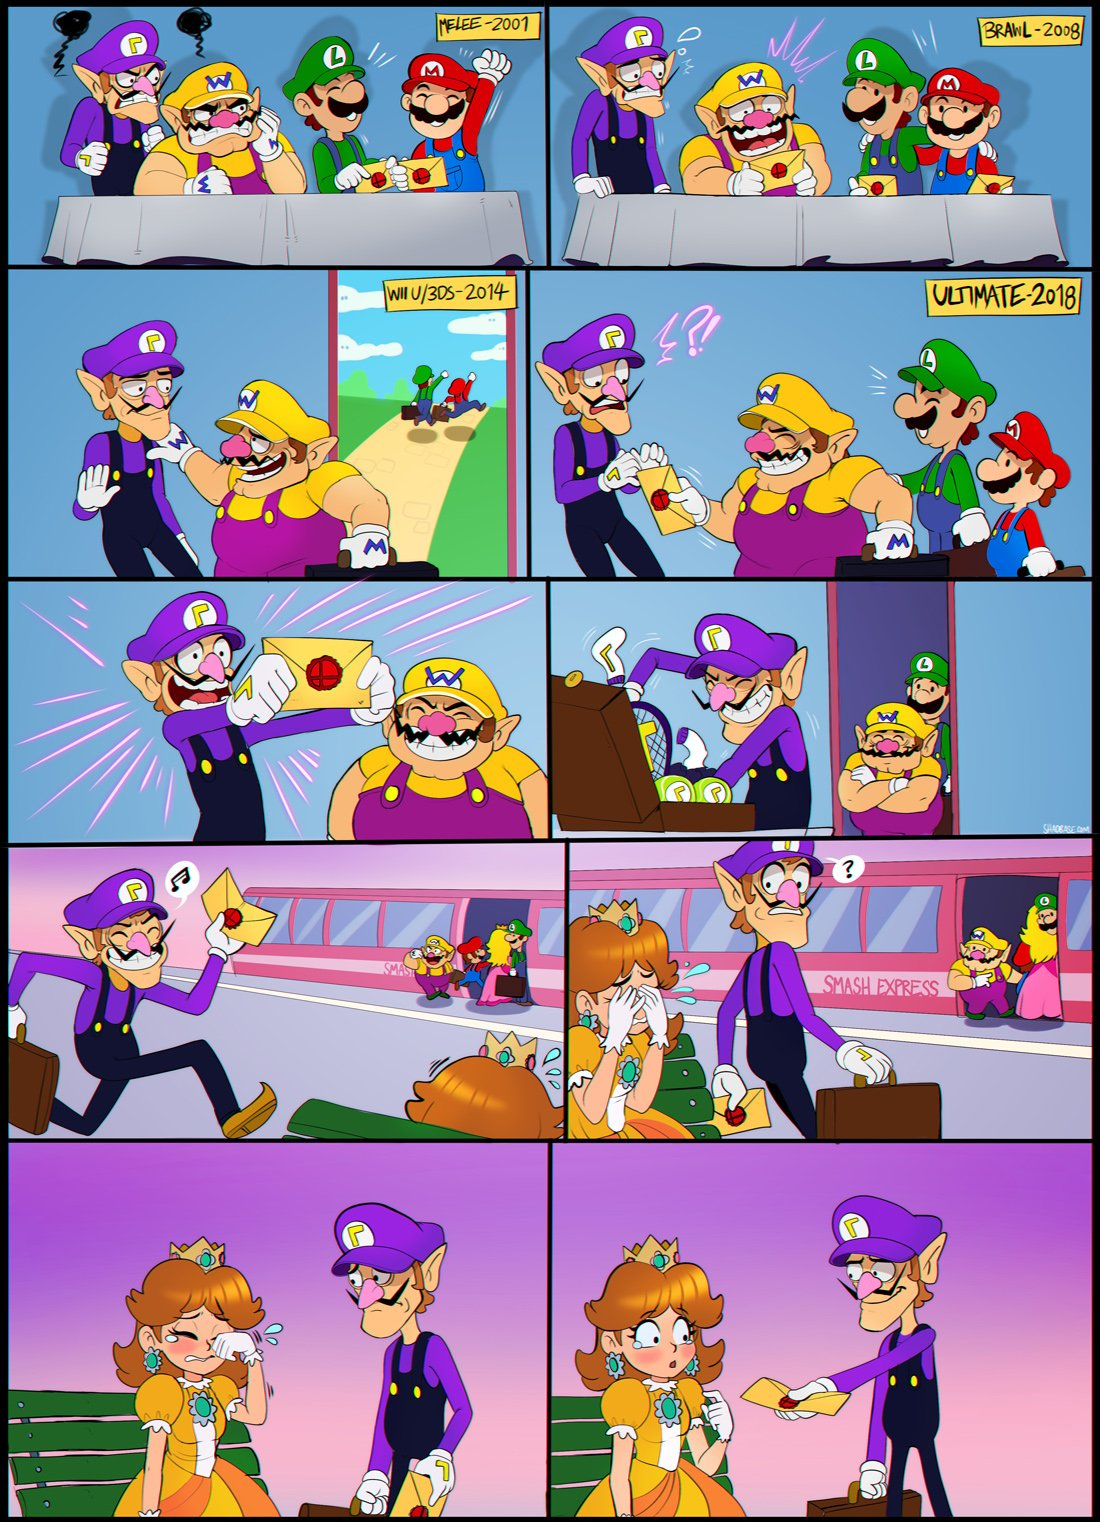 shadman of all people provides a wholesome explanation waluigi s